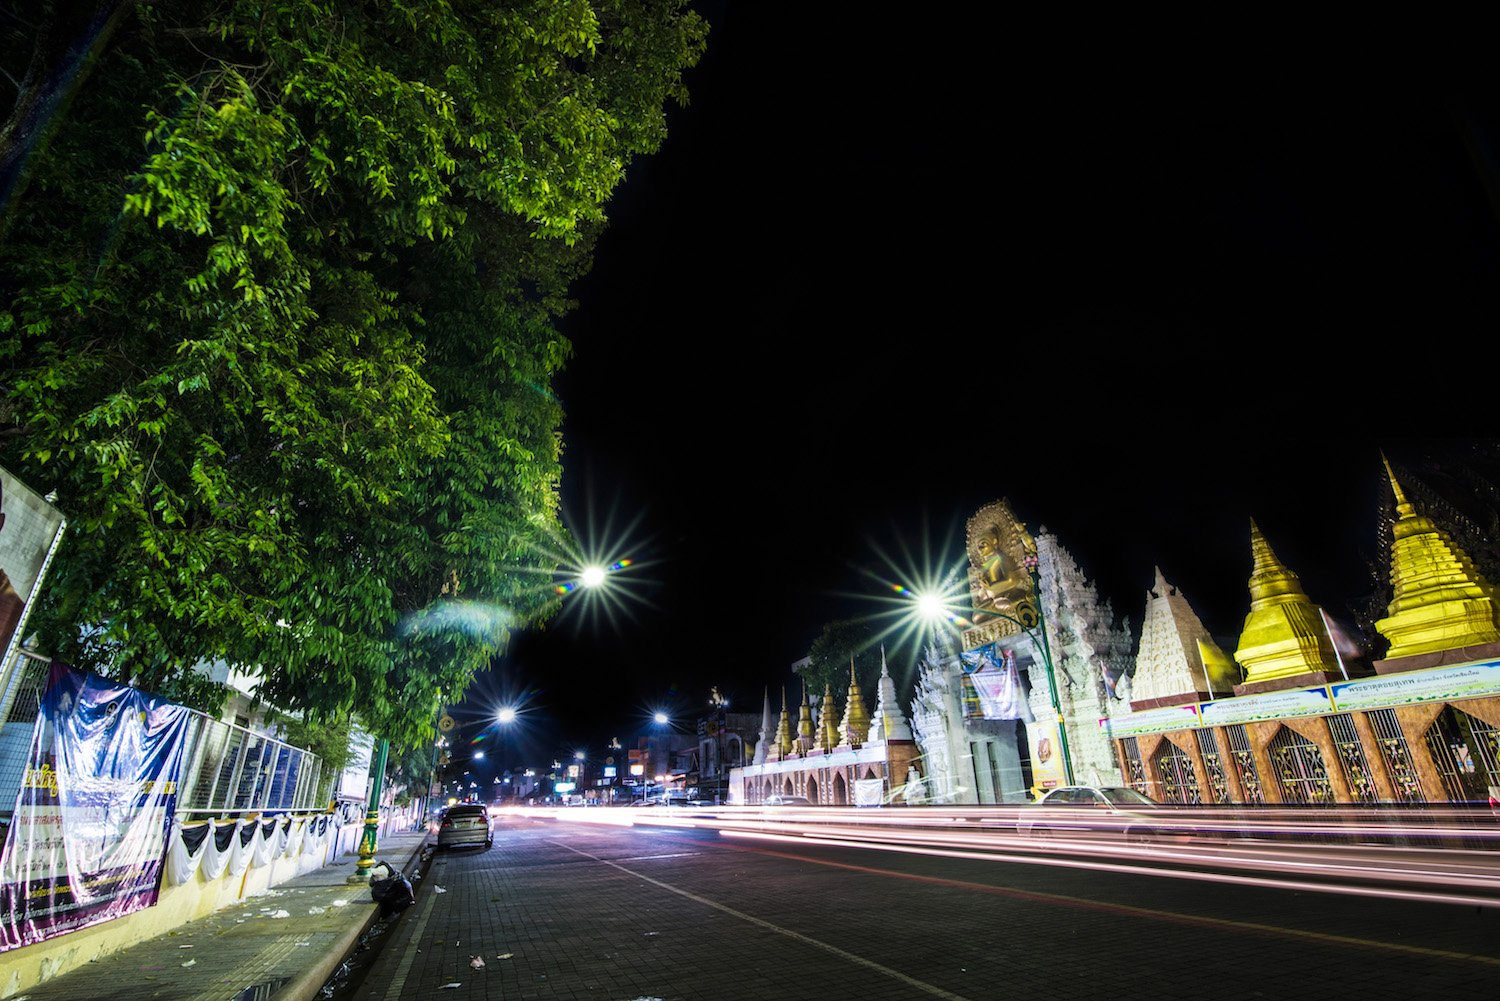 Nakhon Si Thammarat in Southern Thailand, Nakhon Si Thammarat in Southern Thailand